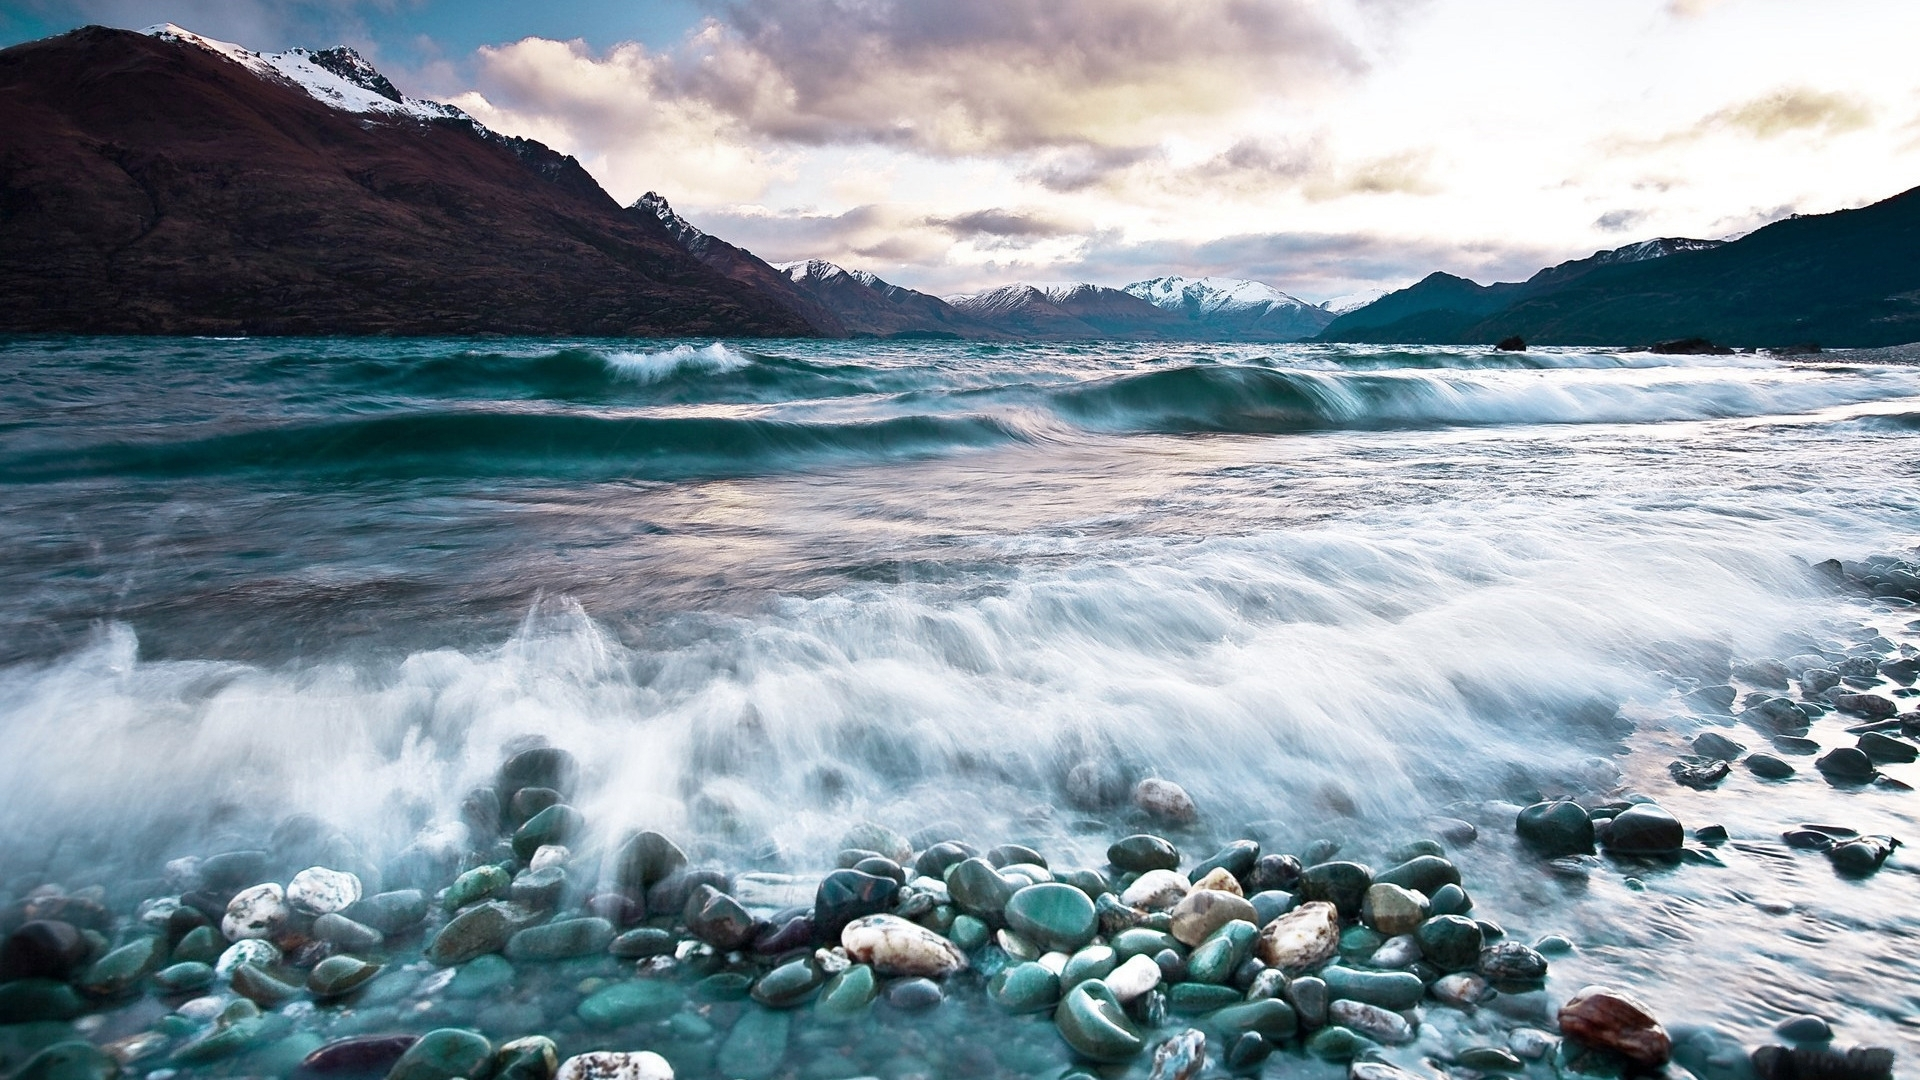 33641 download wallpaper Landscape, Mountains, Sea screensavers and pictures for free